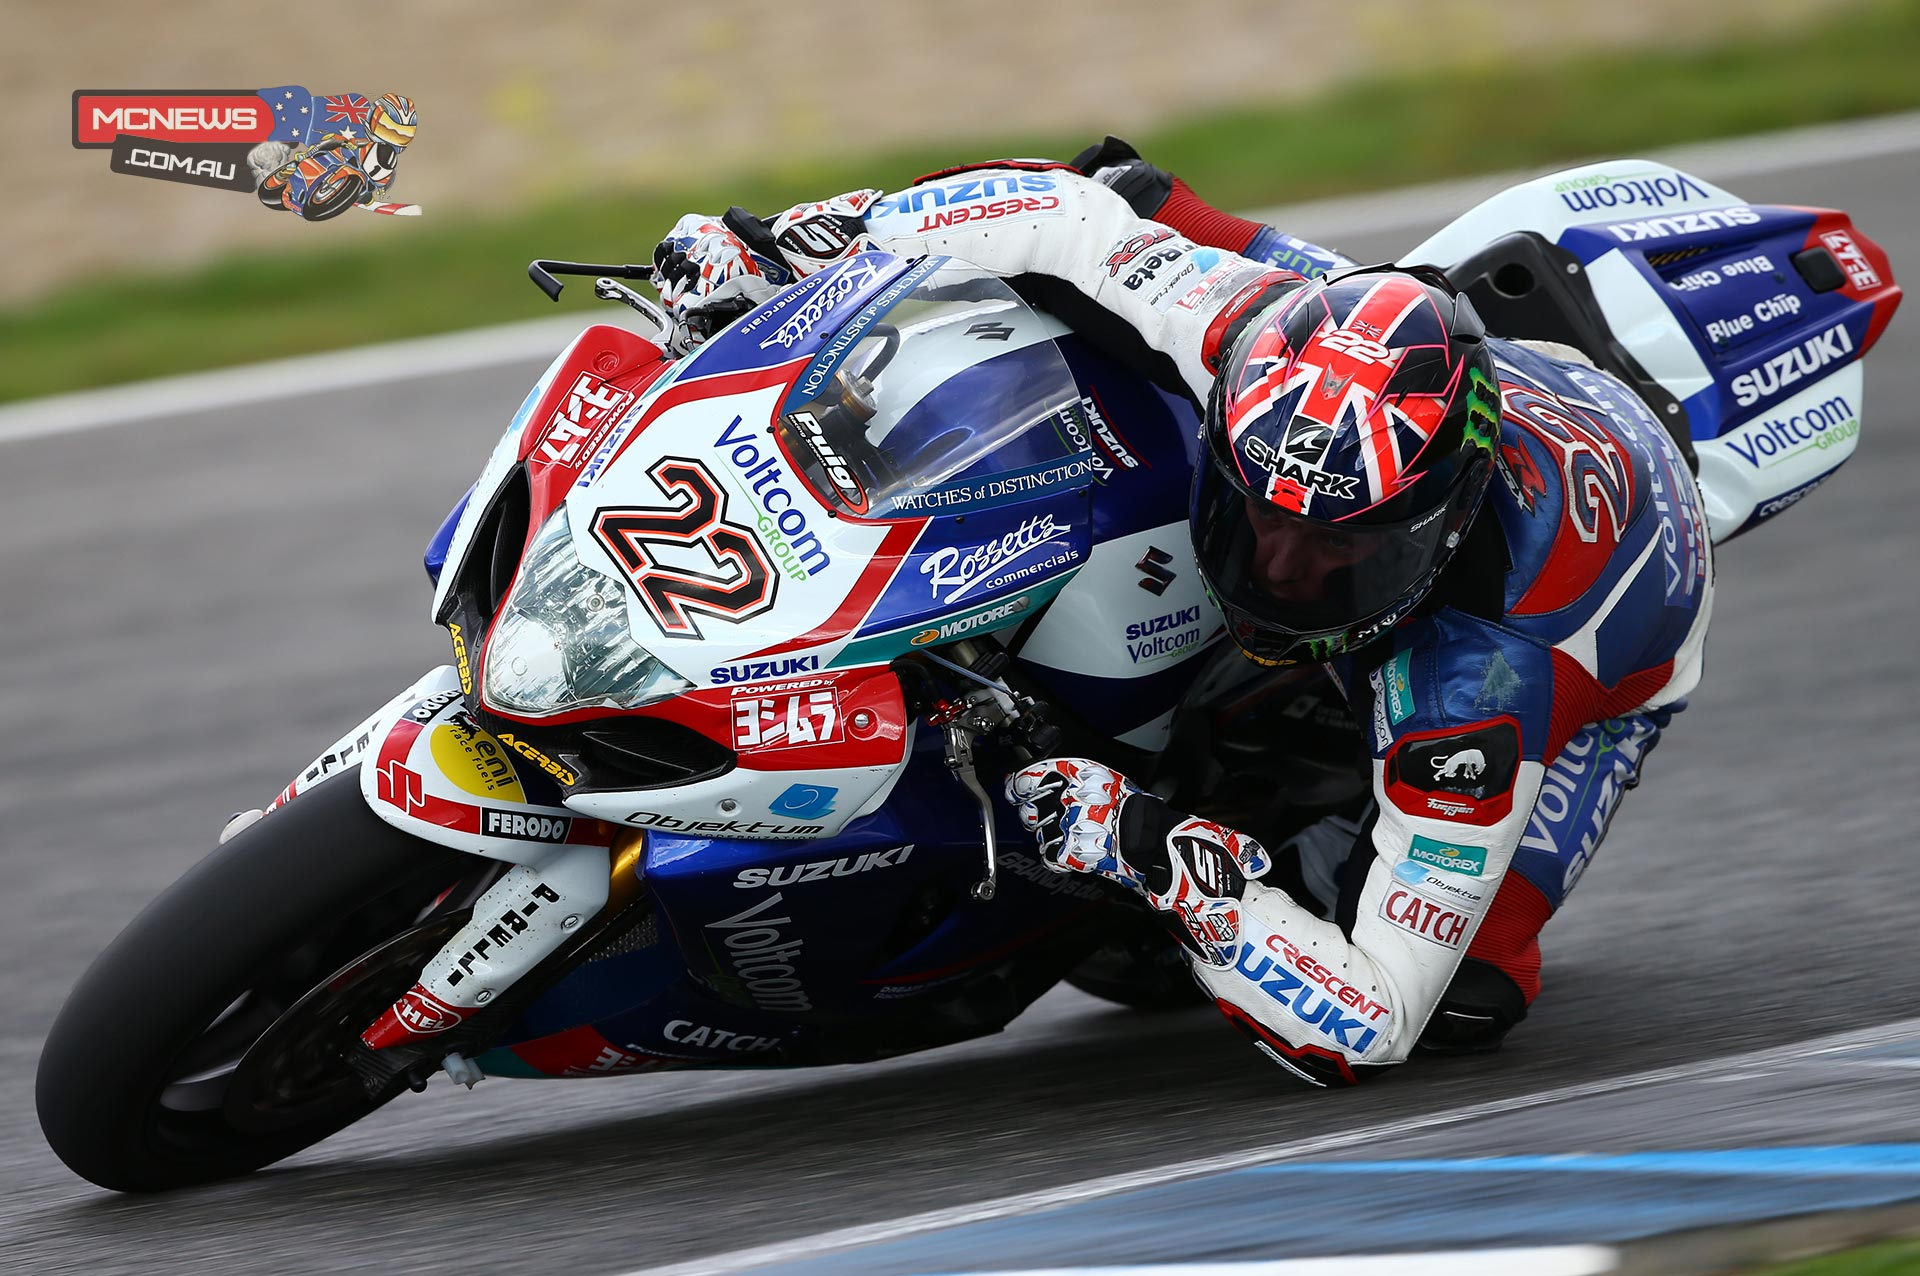 """Alex Lowes: """"It's been a good week, I'm happy to finish the year feeling confident and with a renewed optimism about the 2015 bike. It's slightly frustrating that we didn't get more of an opportunity to test everything we had planned but I'm happy with the overall performance. I'm feeling positive and stress-free heading into the winter which is always important. Thanks to the Voltcom Crescent Suzuki team for this year; we will try to improve next year and come back strong in pre-season testing in January."""""""